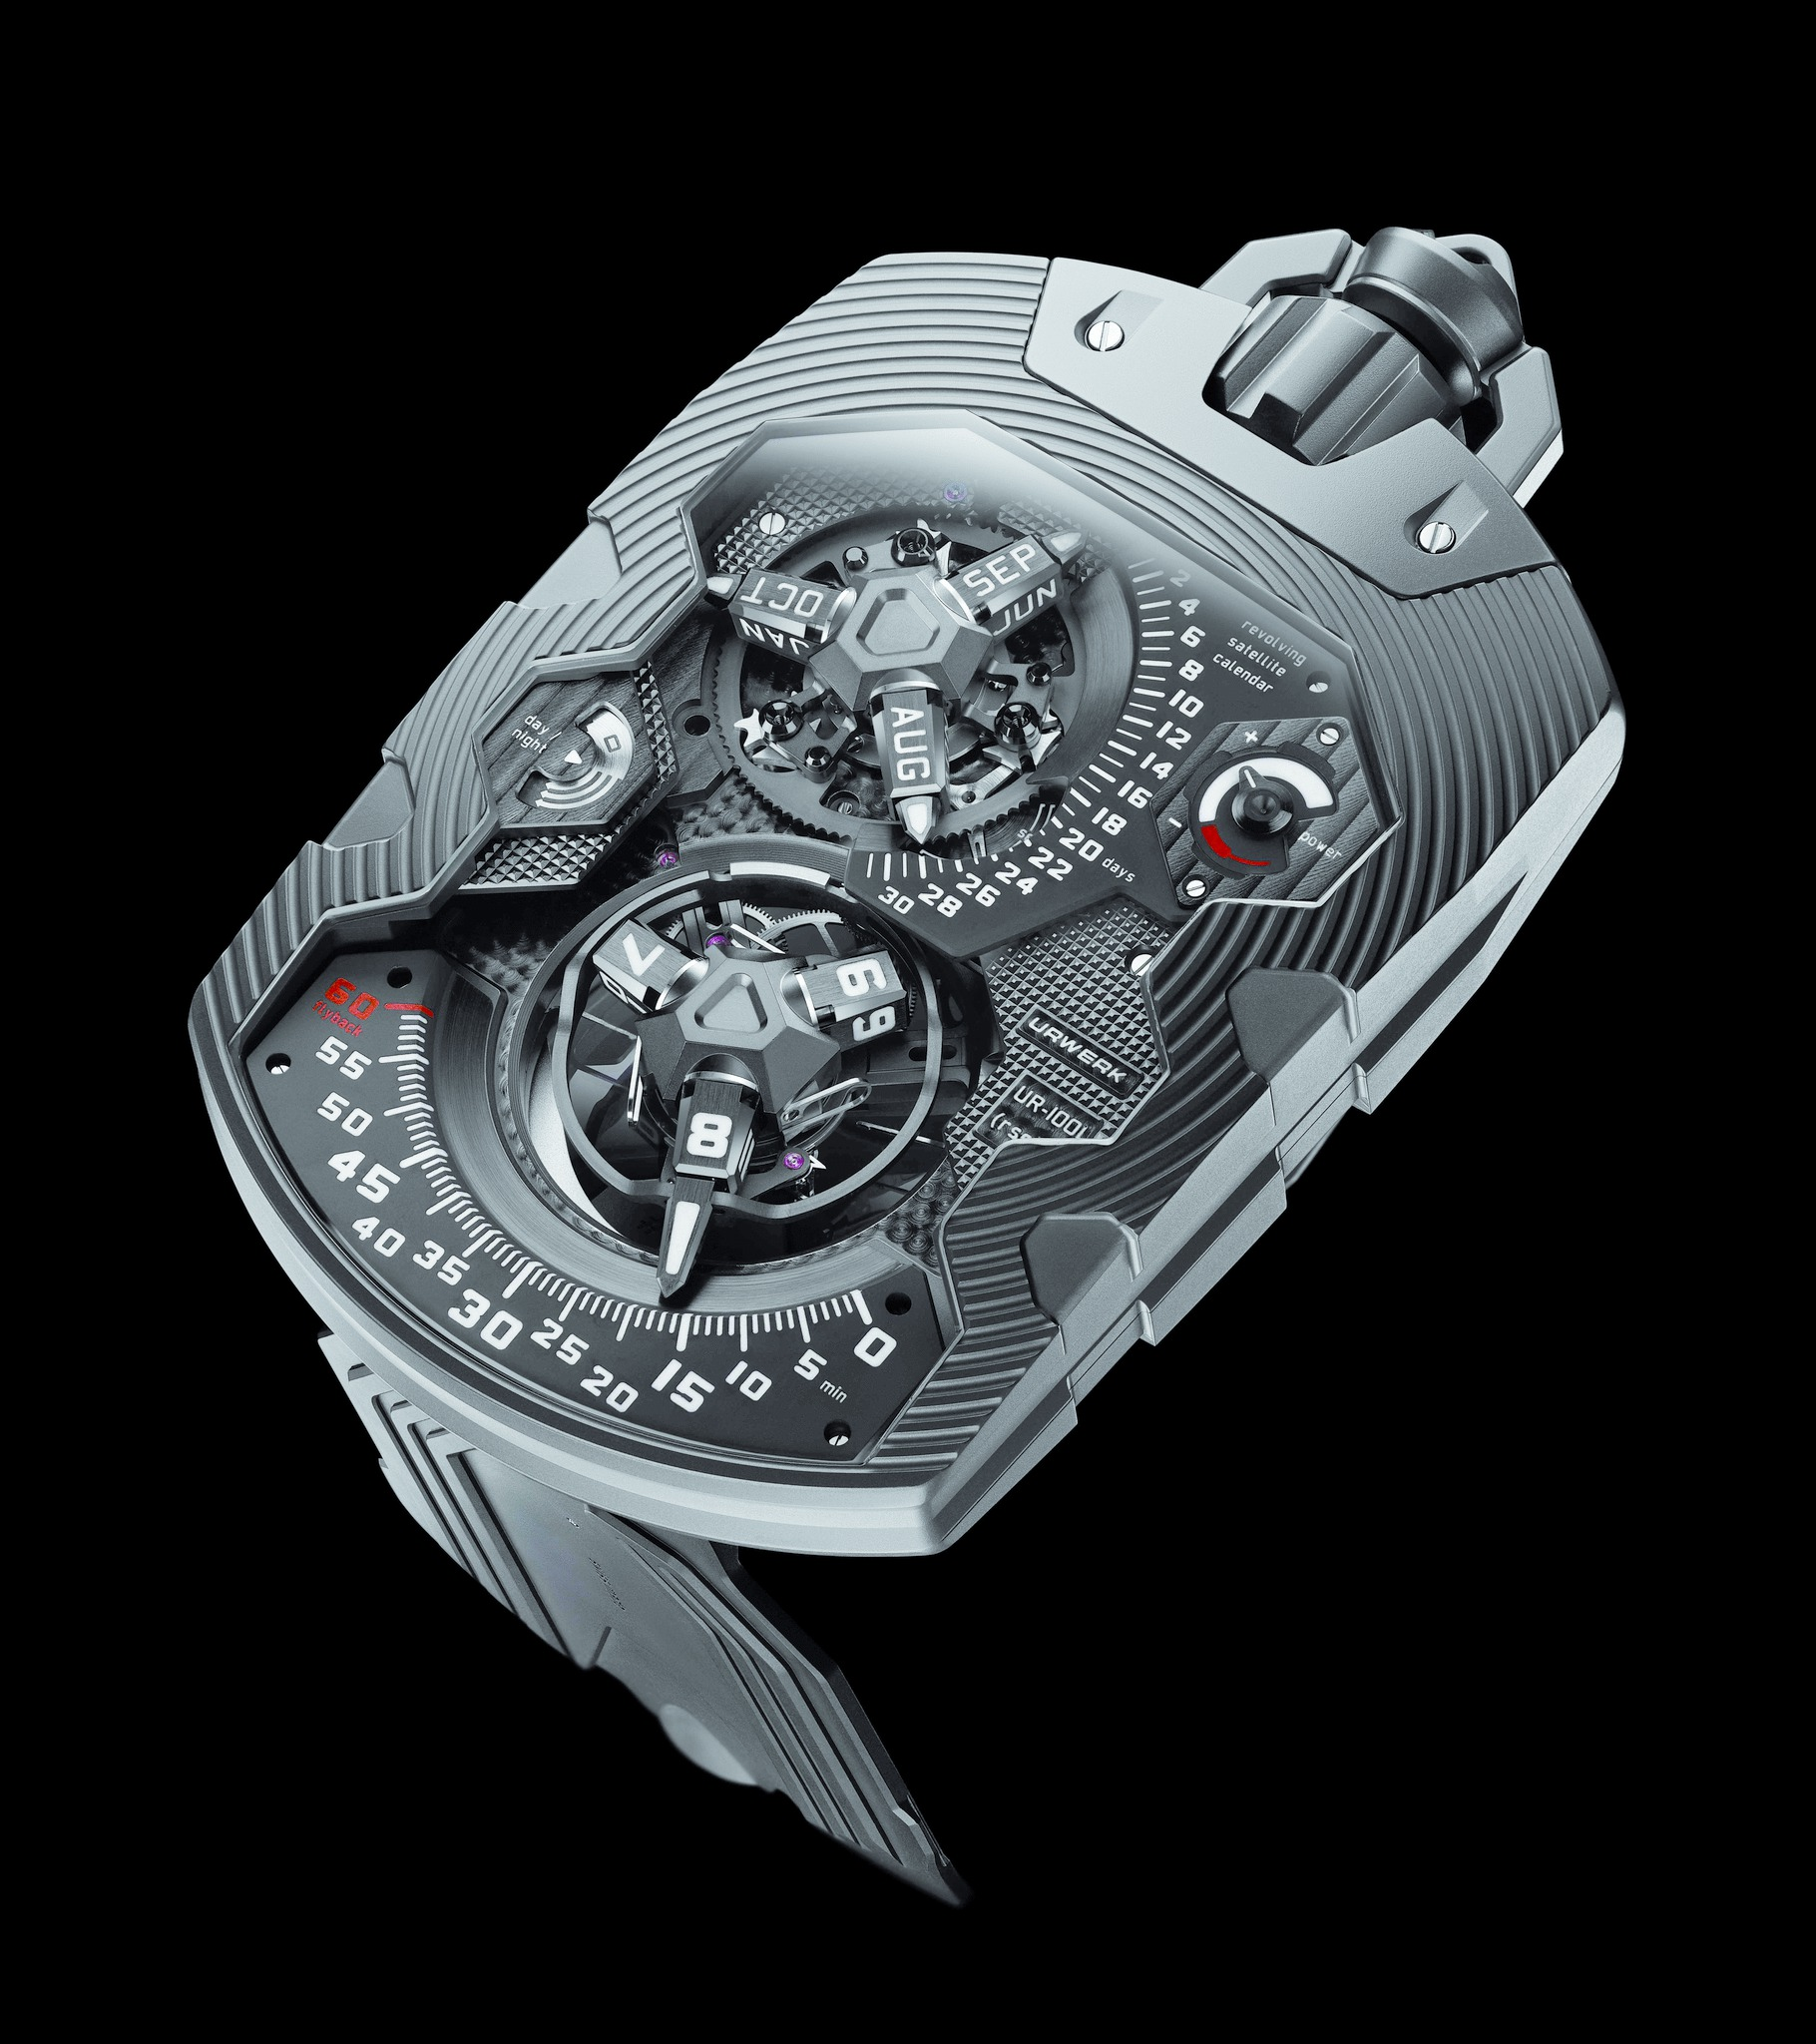 Replica Urwerk UR-1001 Zeit Device AlTiN-Coated Steel Watch